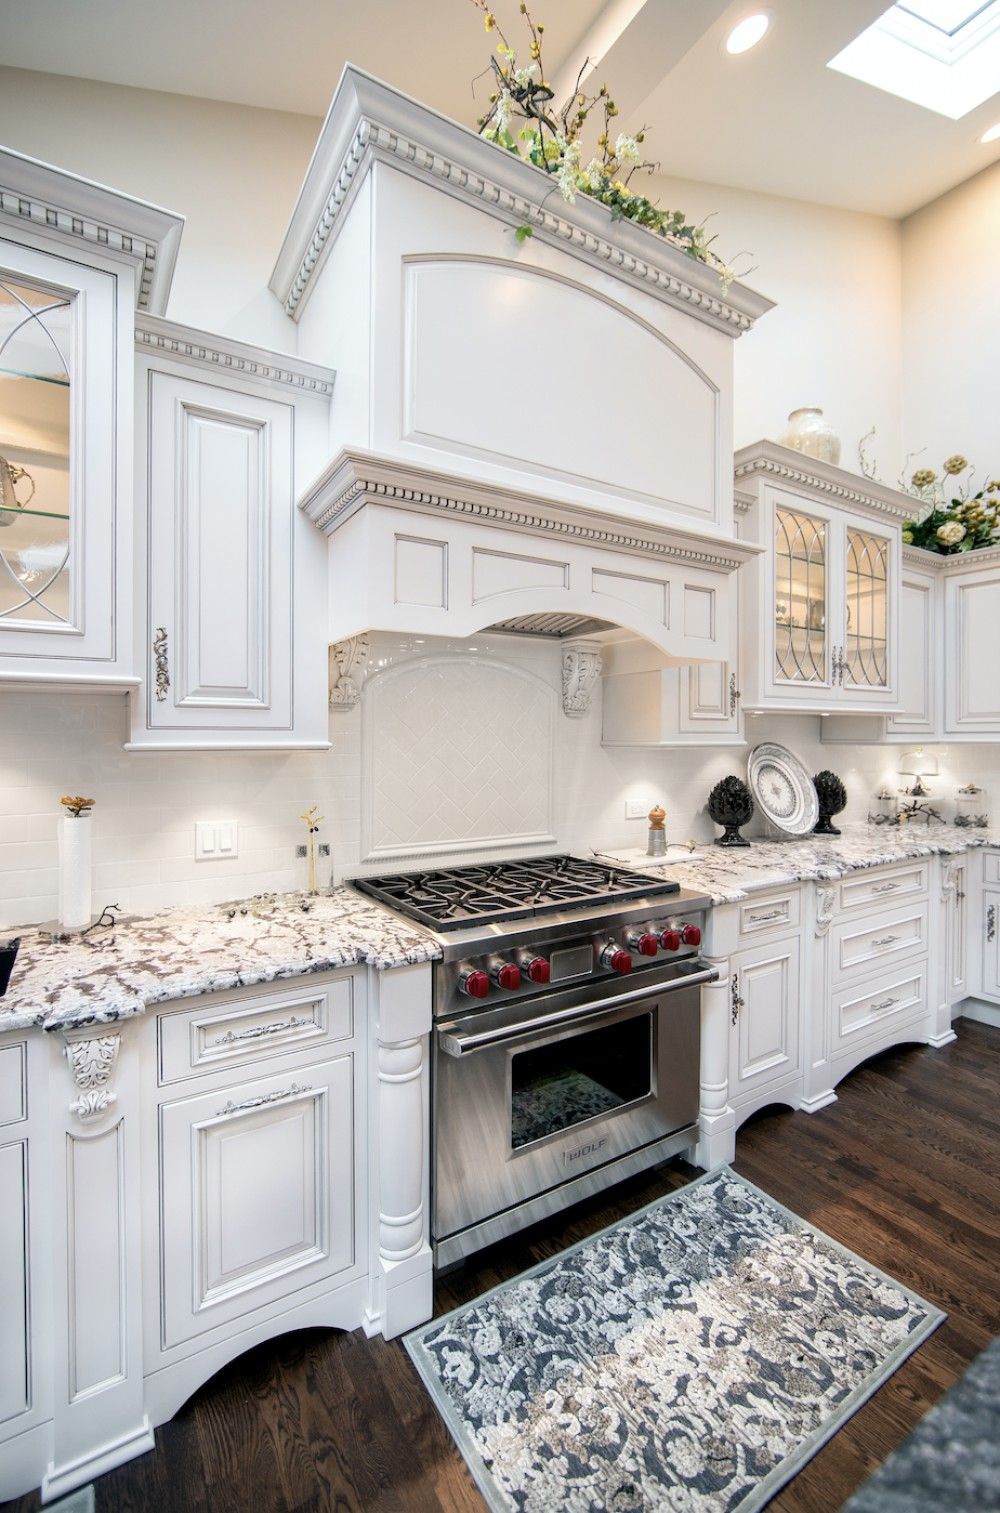 A Luxury Kitchen Designed By Linly Designs